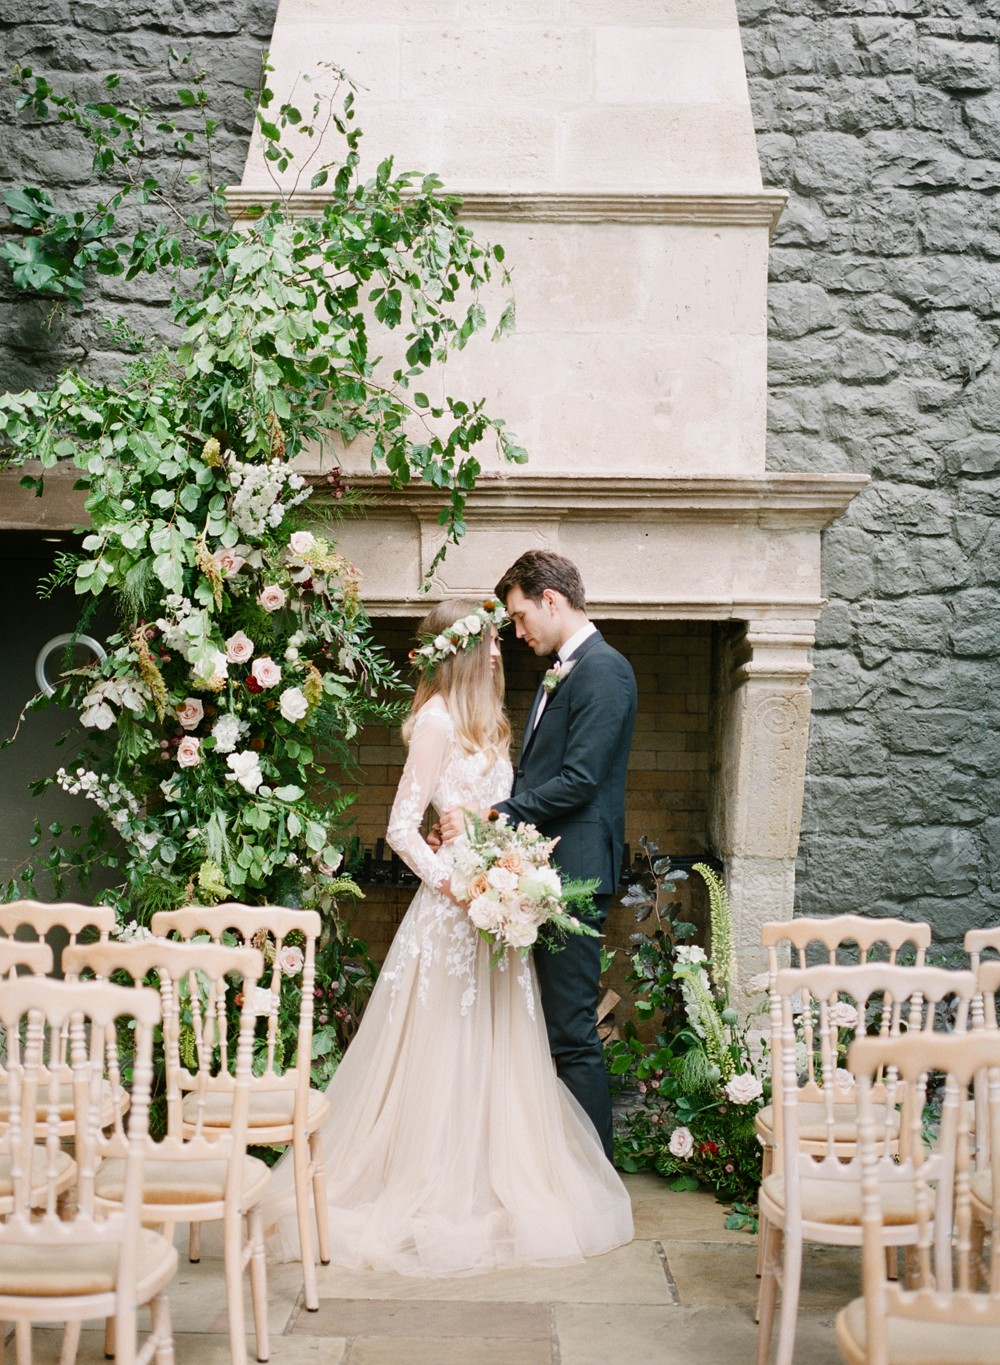 Orangery Wedding Style with a Nude Colored Wedding Dress